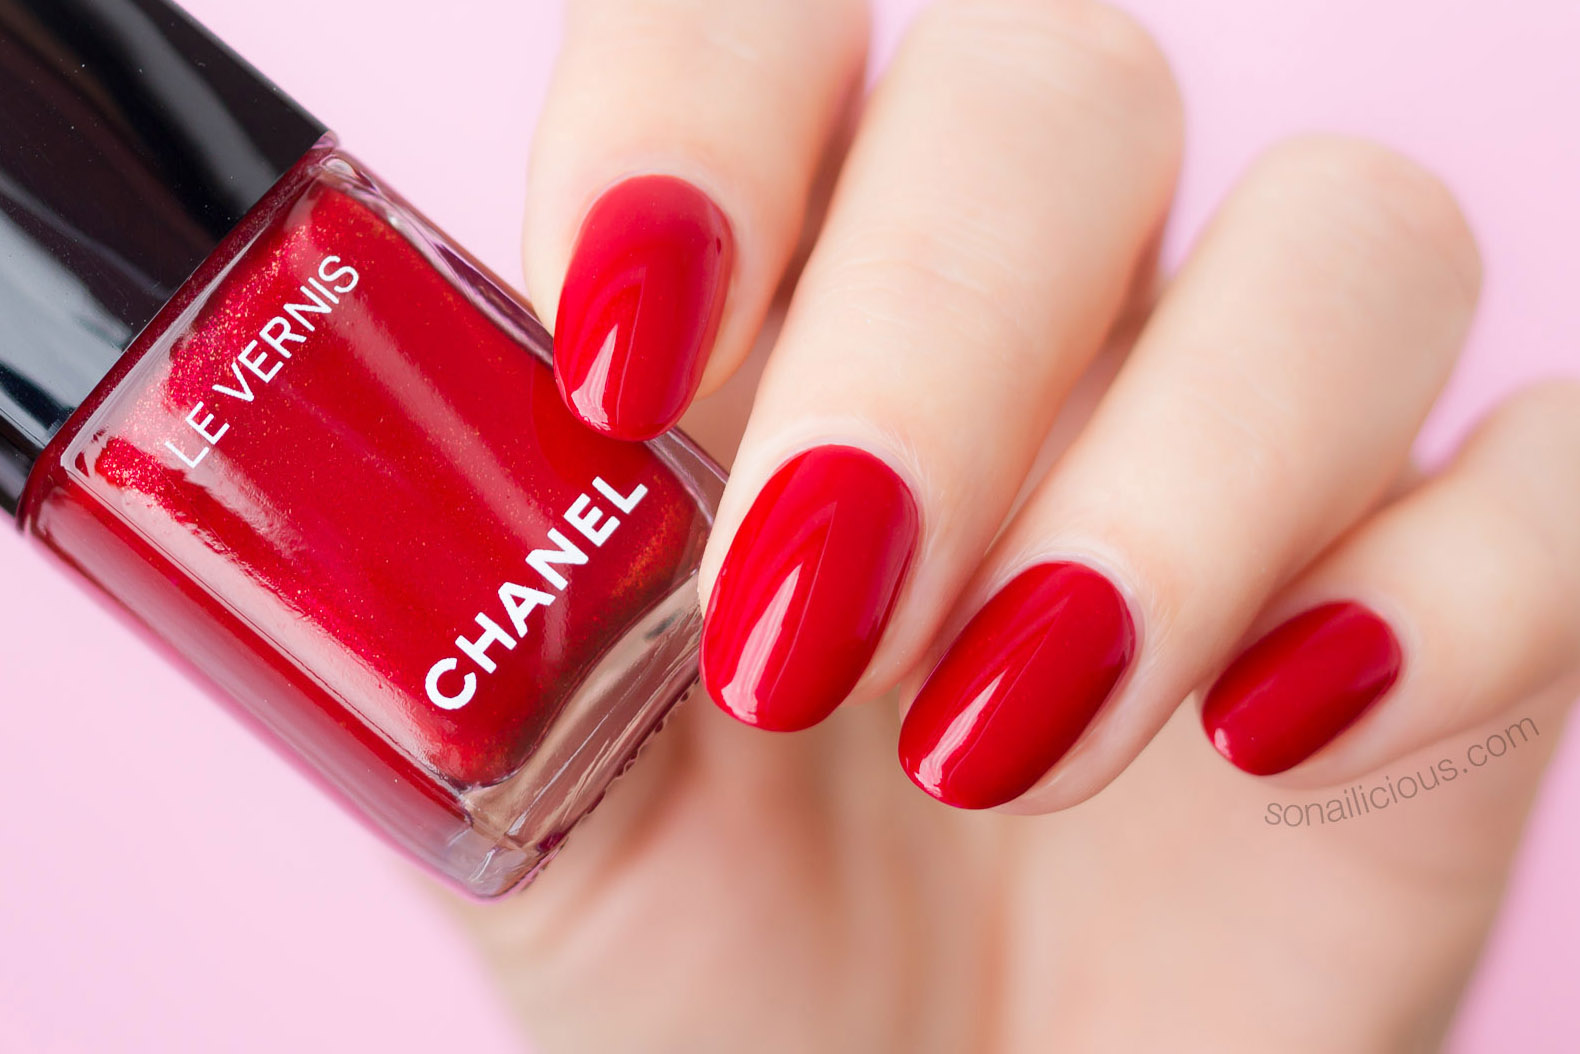 Chanel 918 flamboyance review red nail polish